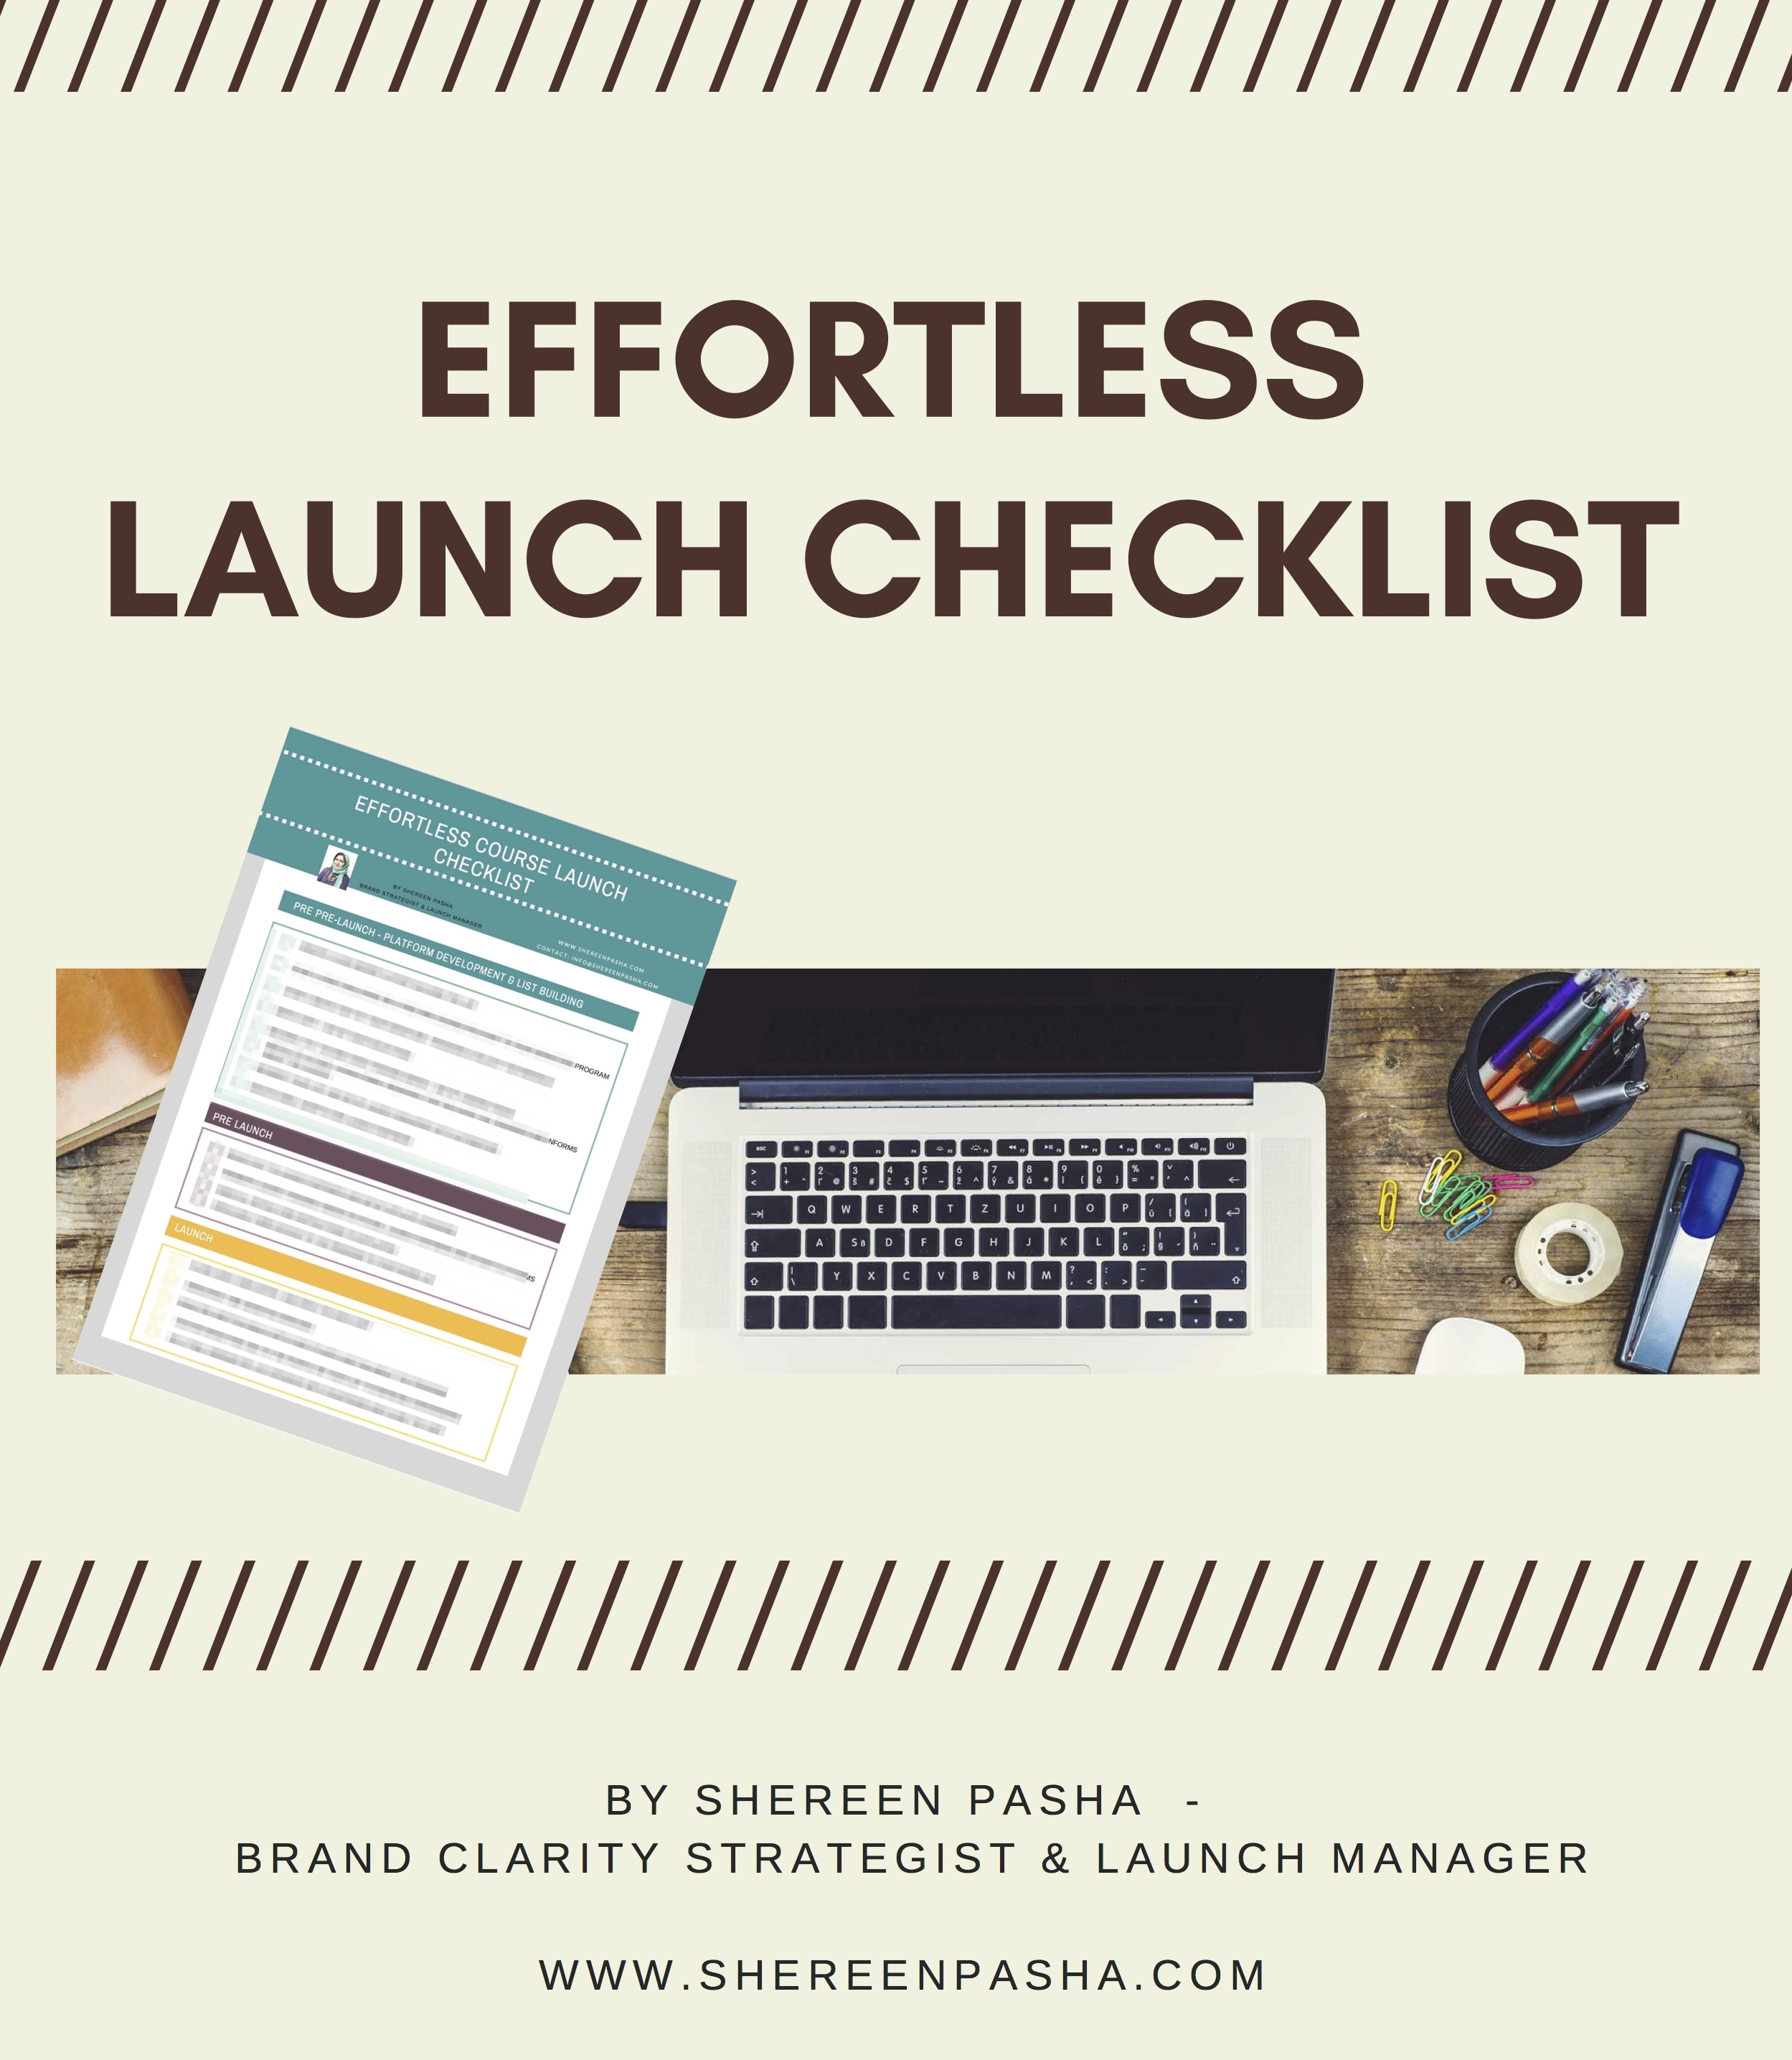 effortless-launch-checklist-cover.jpg